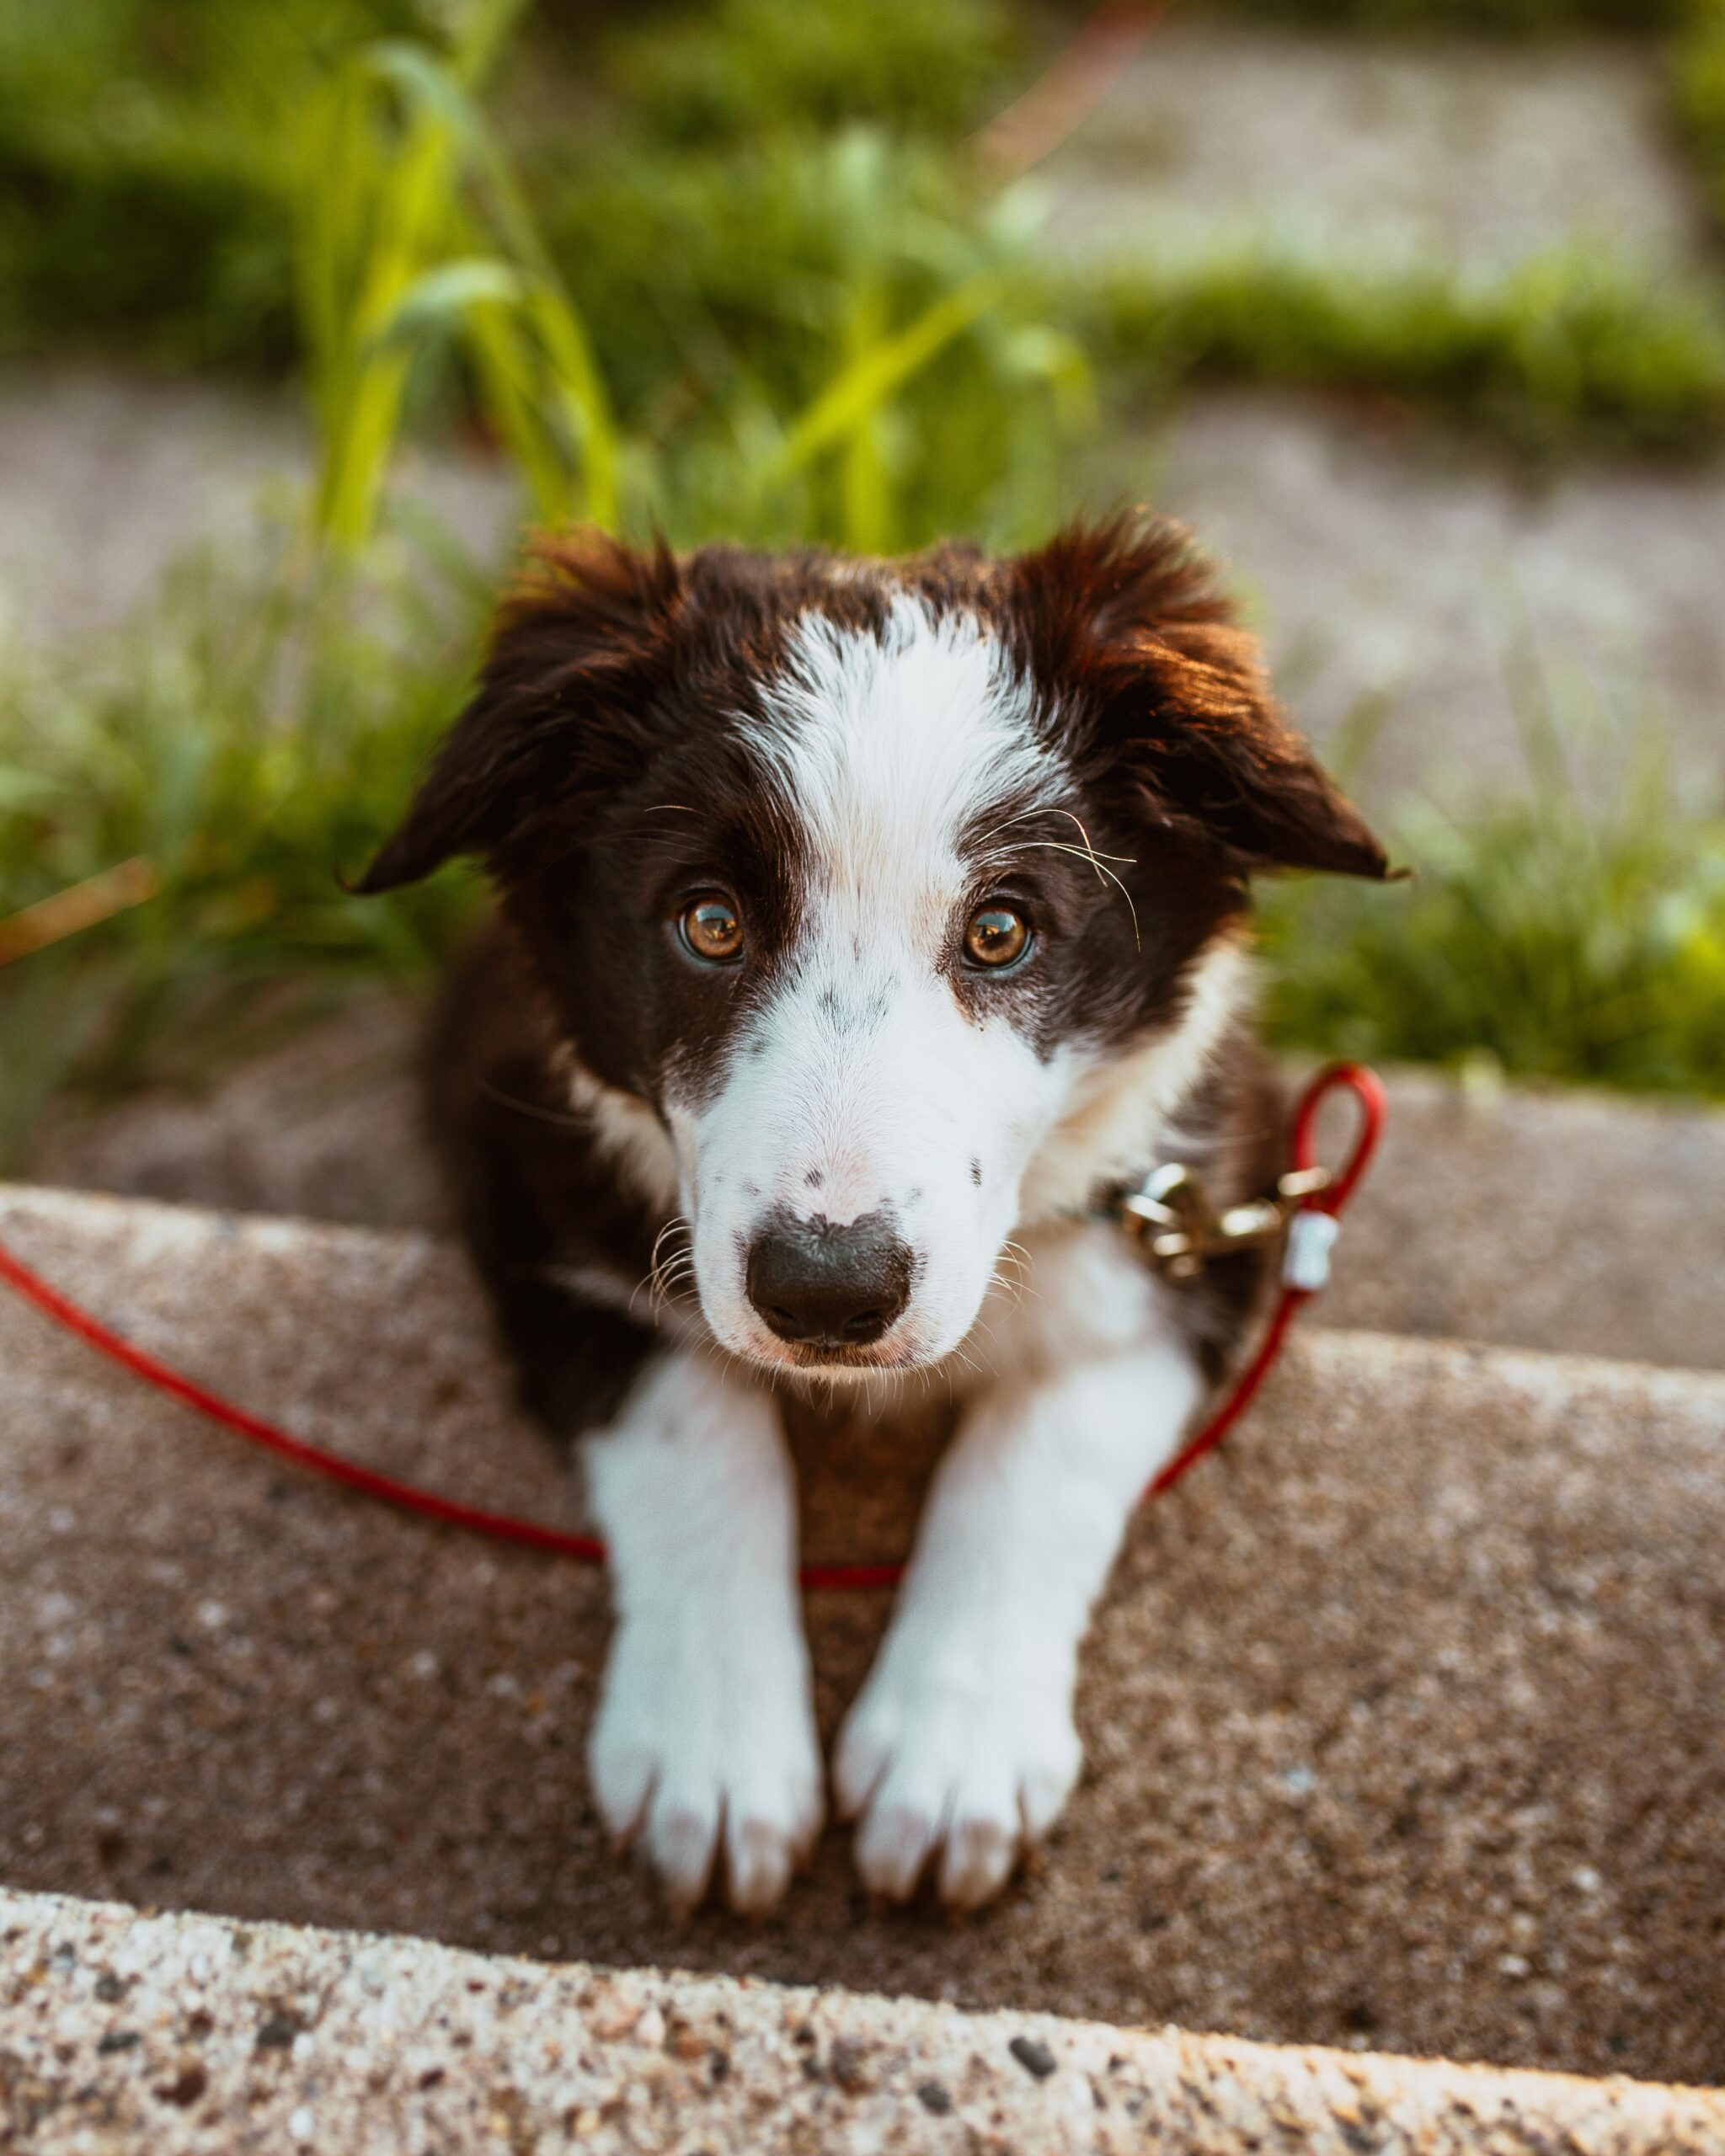 How to Socialize Your Puppy During Social Distancing